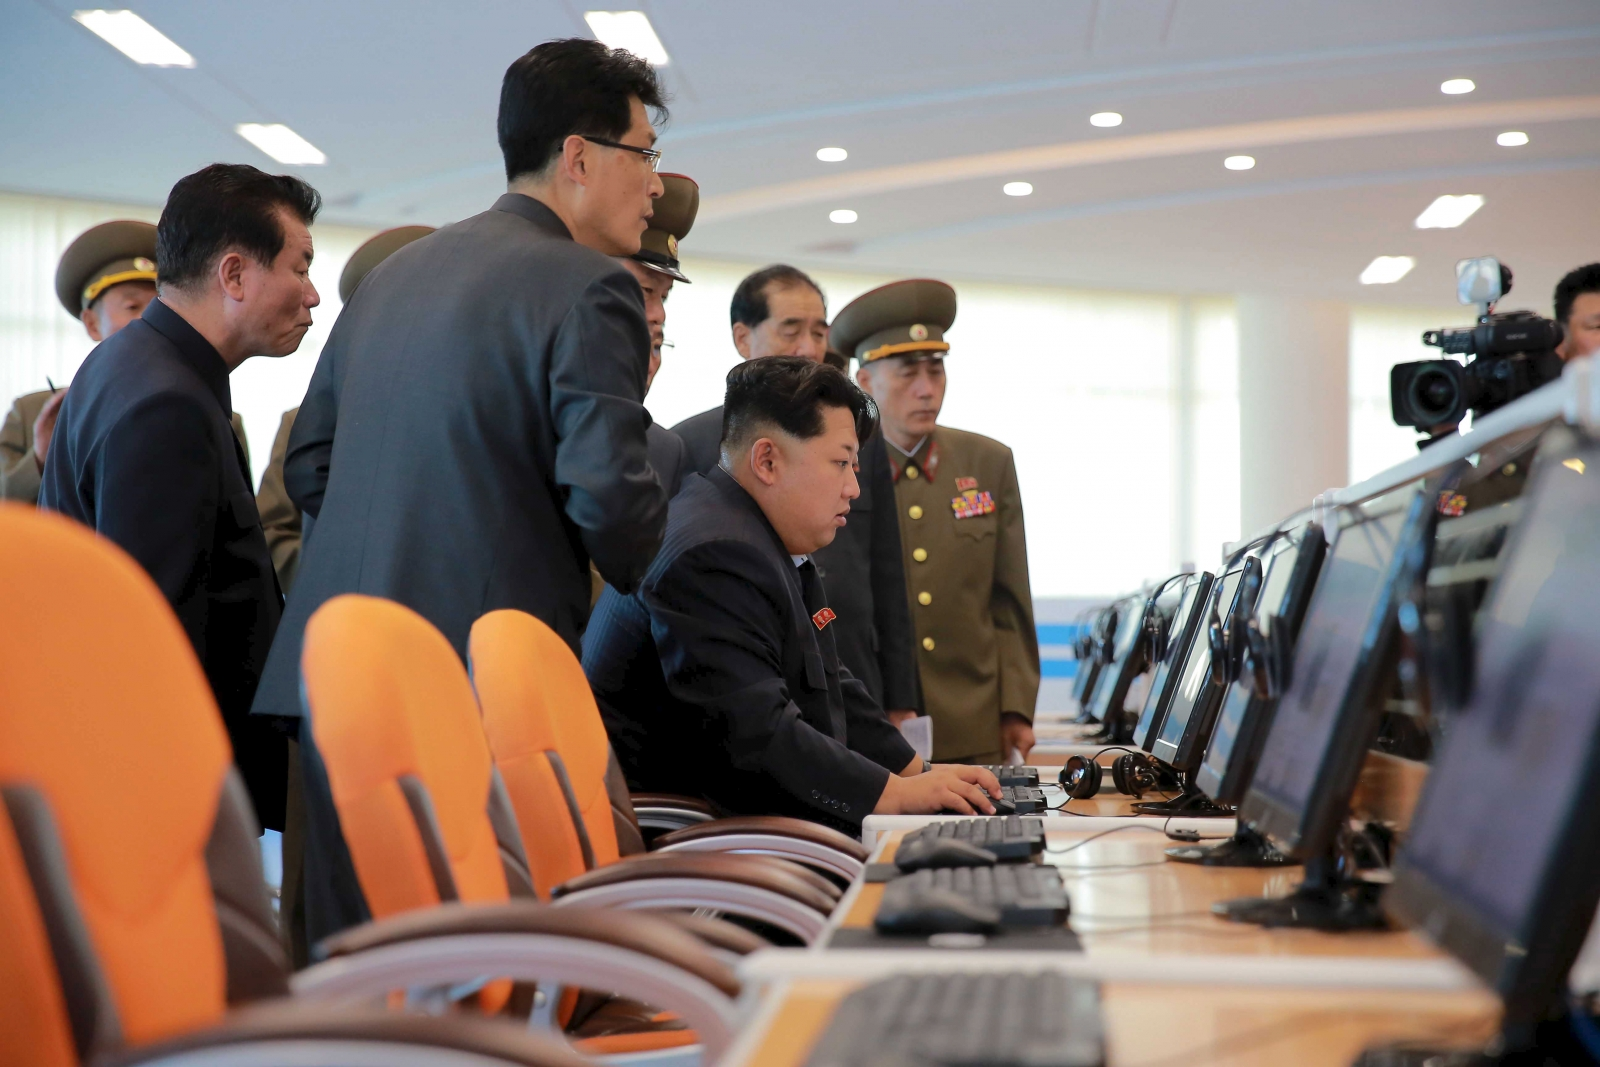 North Korea accidentally leaks all of its propaganda websites which provide unprecedented insight on authoritarian regime